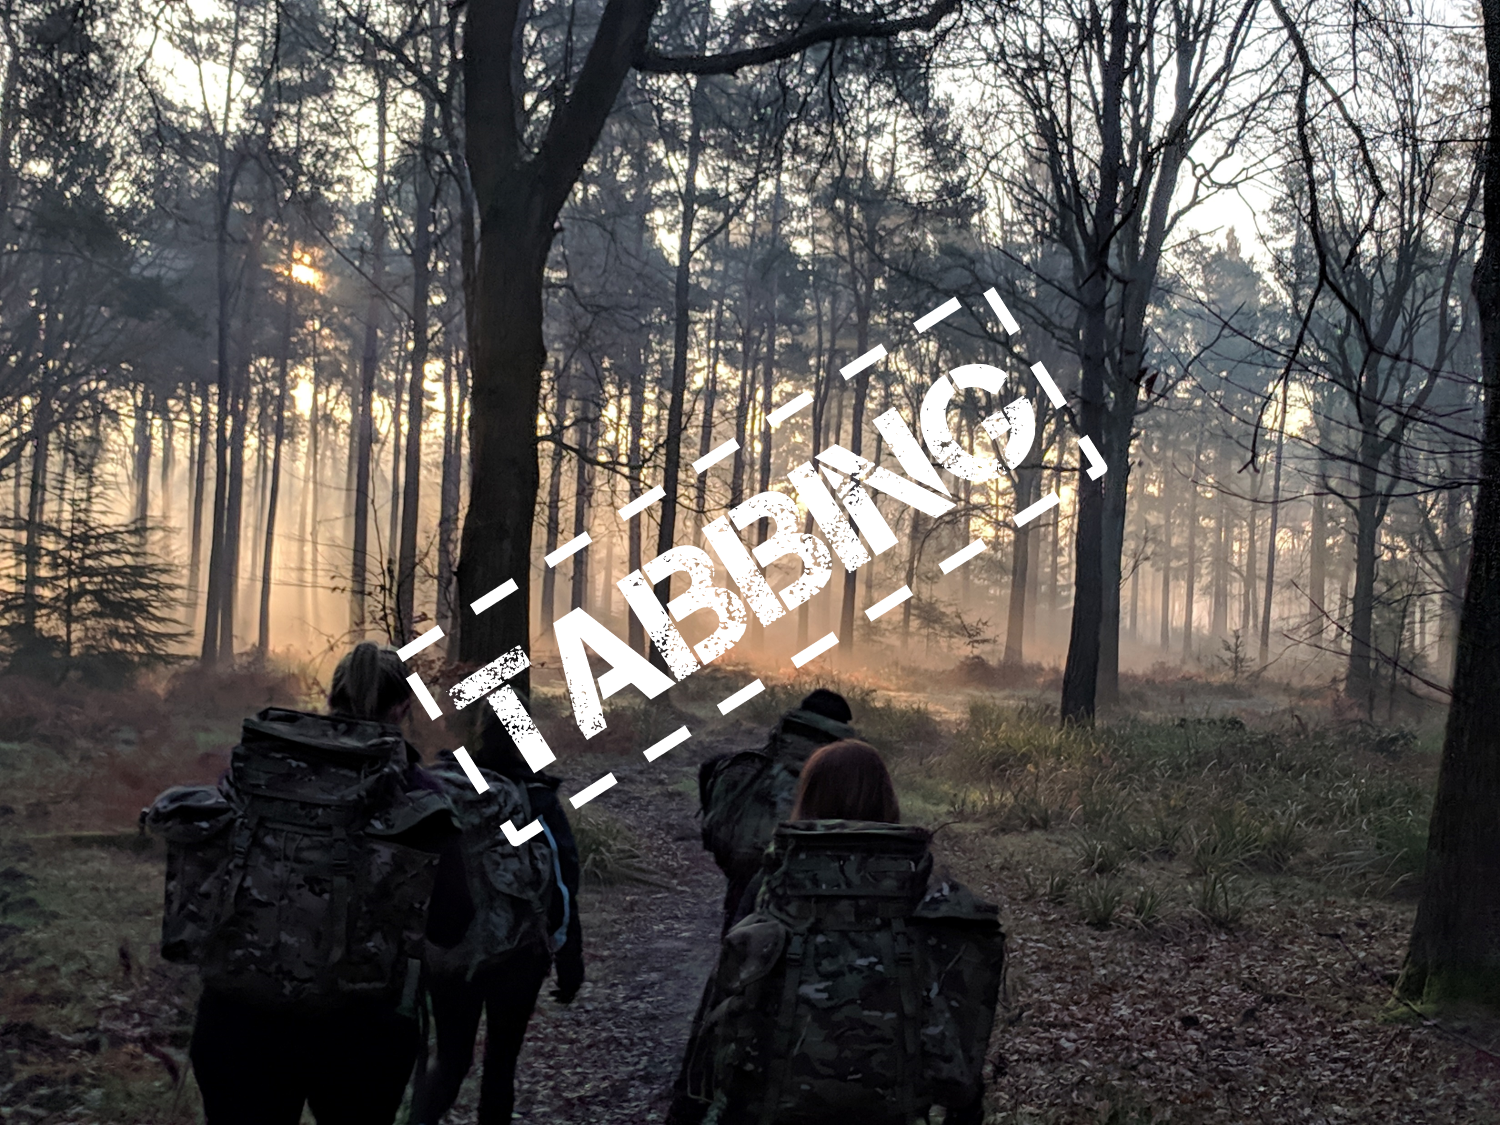 Corps Fitness Tabbing